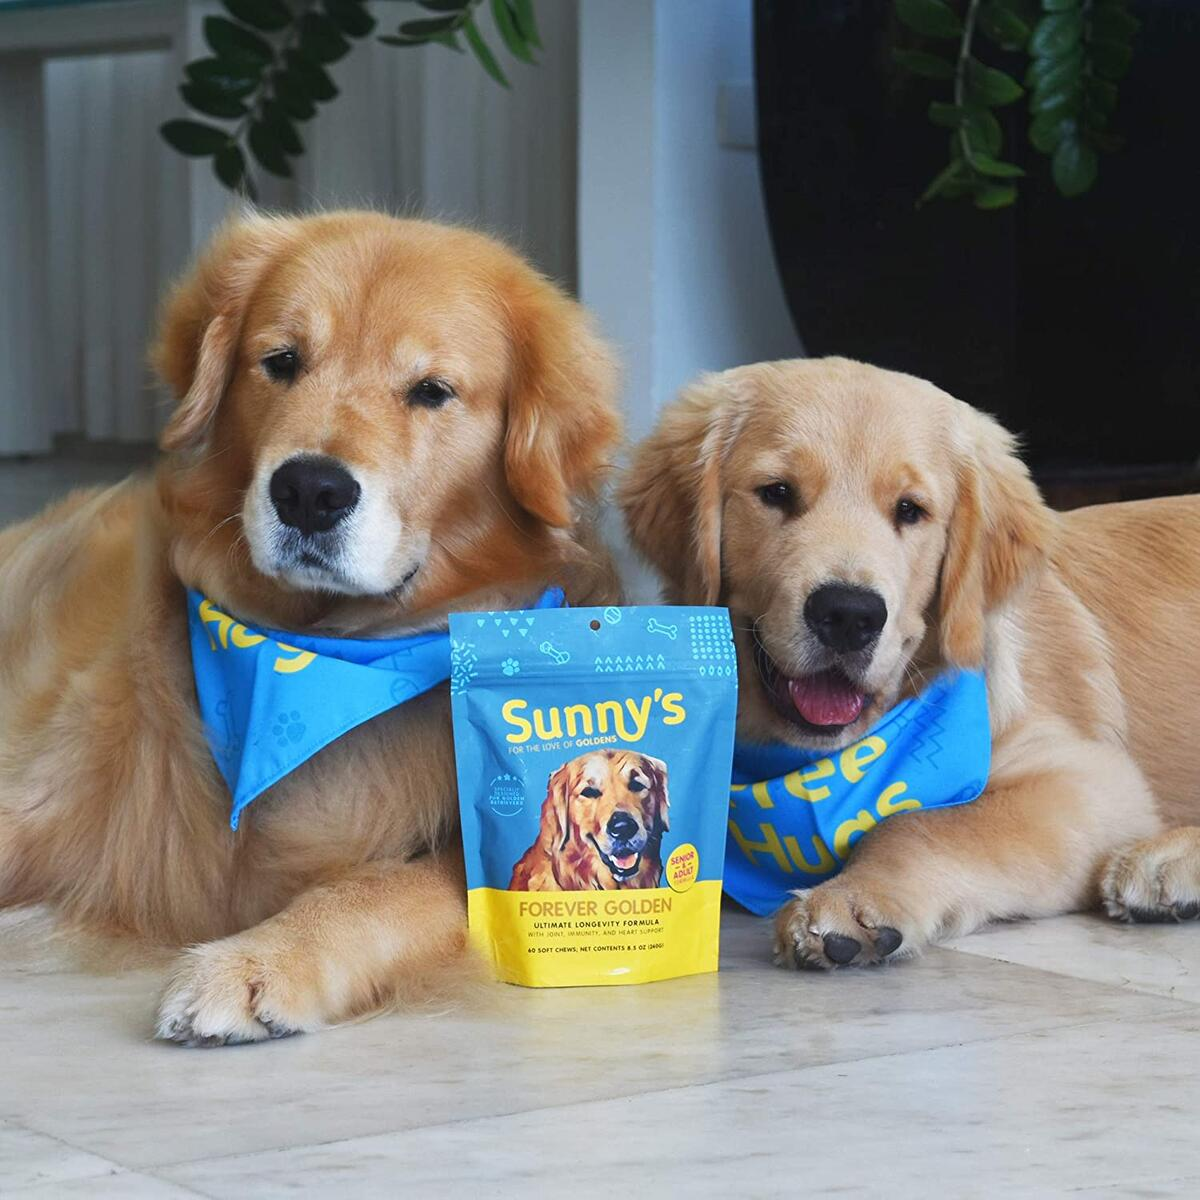 Supplement treats for Golden Retriever Dogs - Great for ALL dogs too!